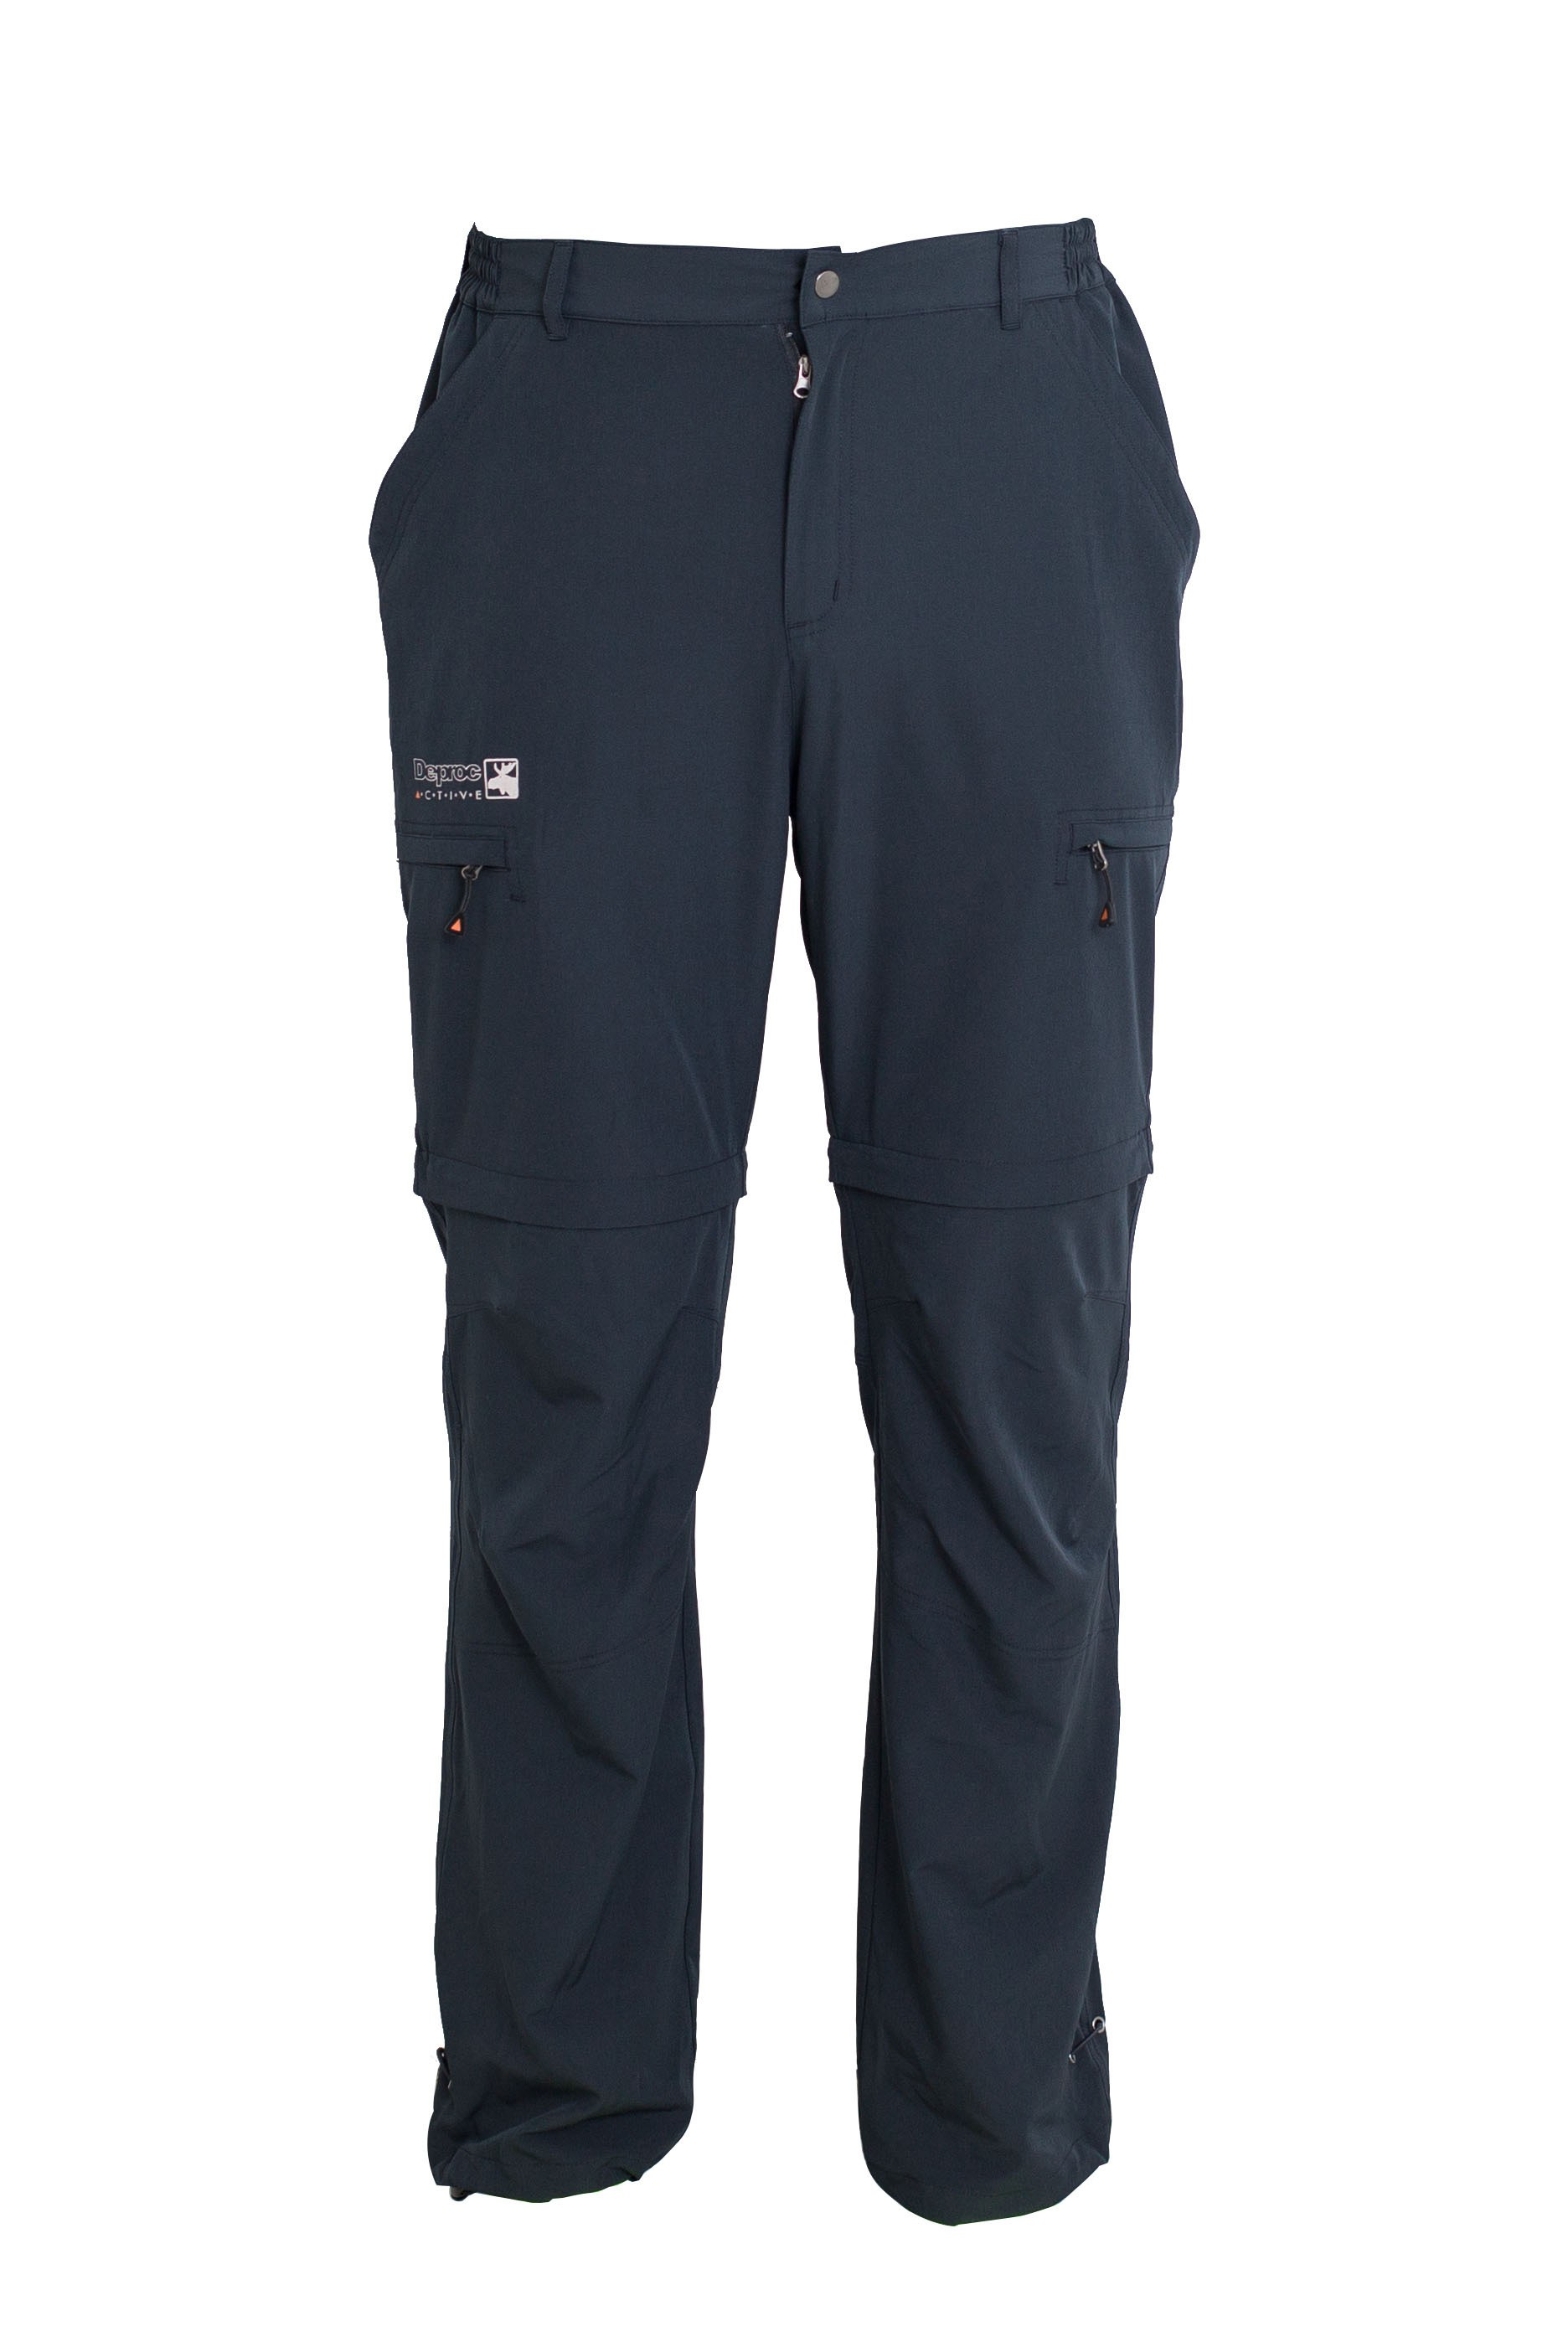 Zip-off Trekkinghose, Outdoorhose & Wanderhose Herren DEPROC KENTVILLE Zipp-Off 4-Wege-Stretch anthra